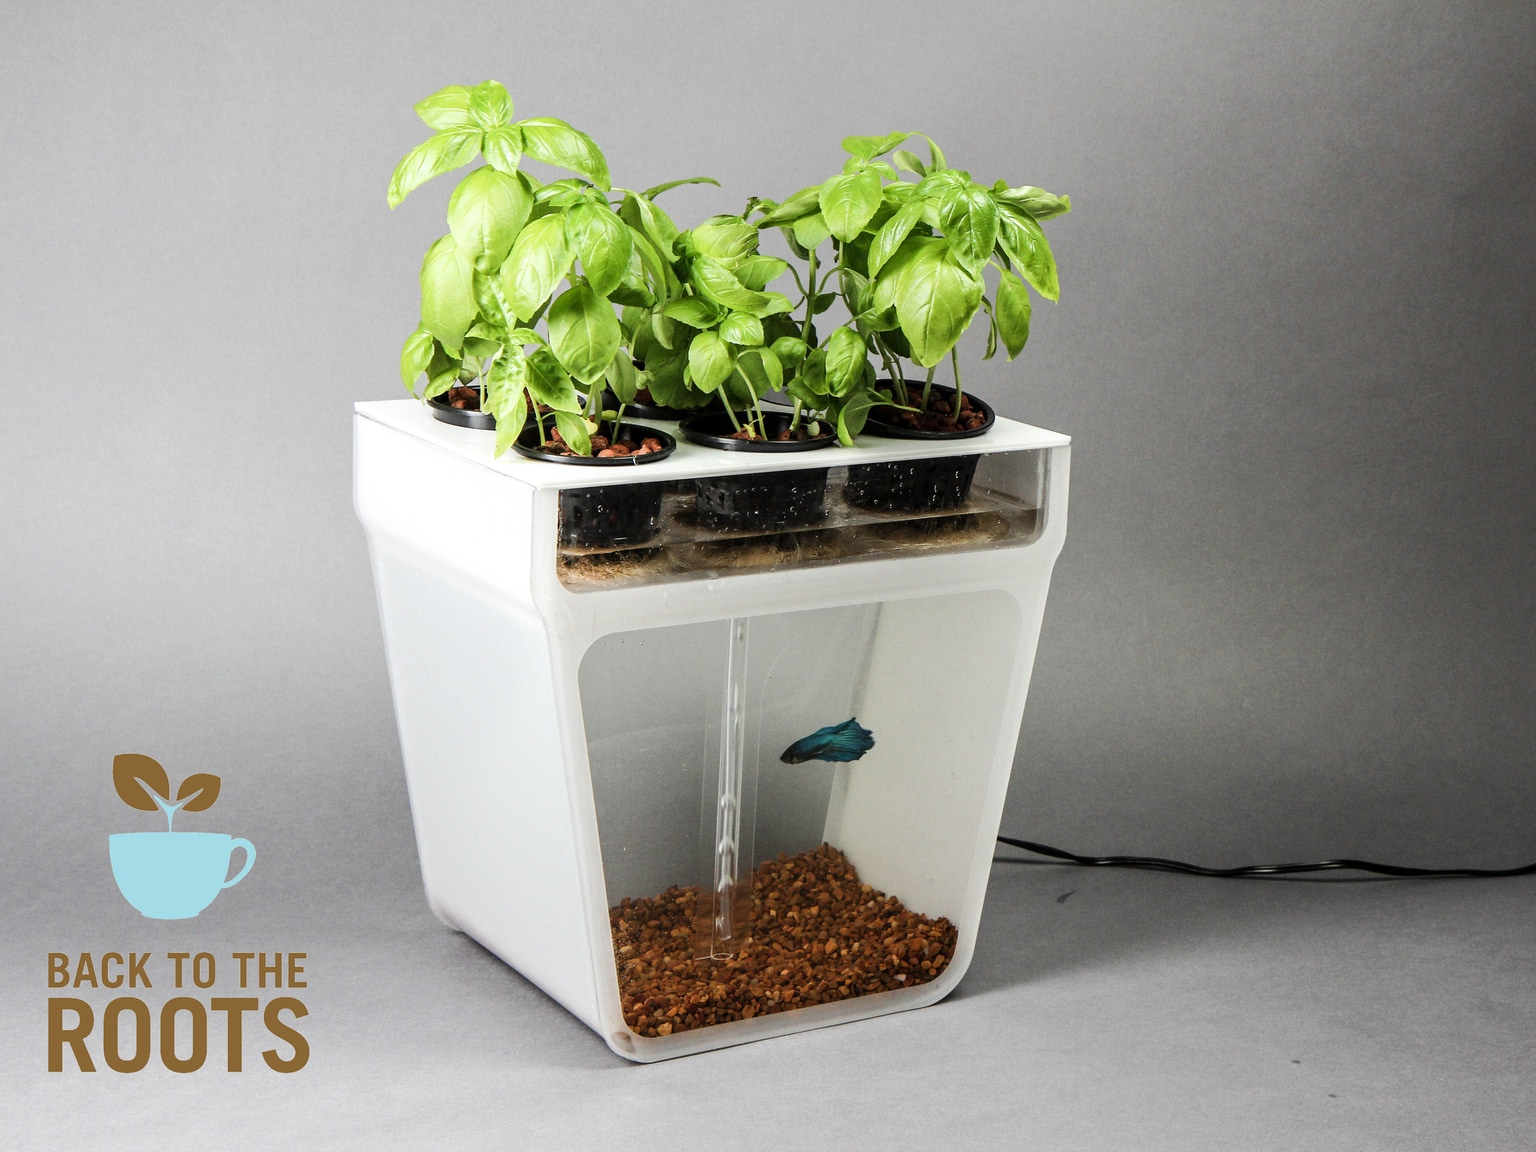 Home aquaponics kit self cleaning fish tank that grows for Loves fish box menu